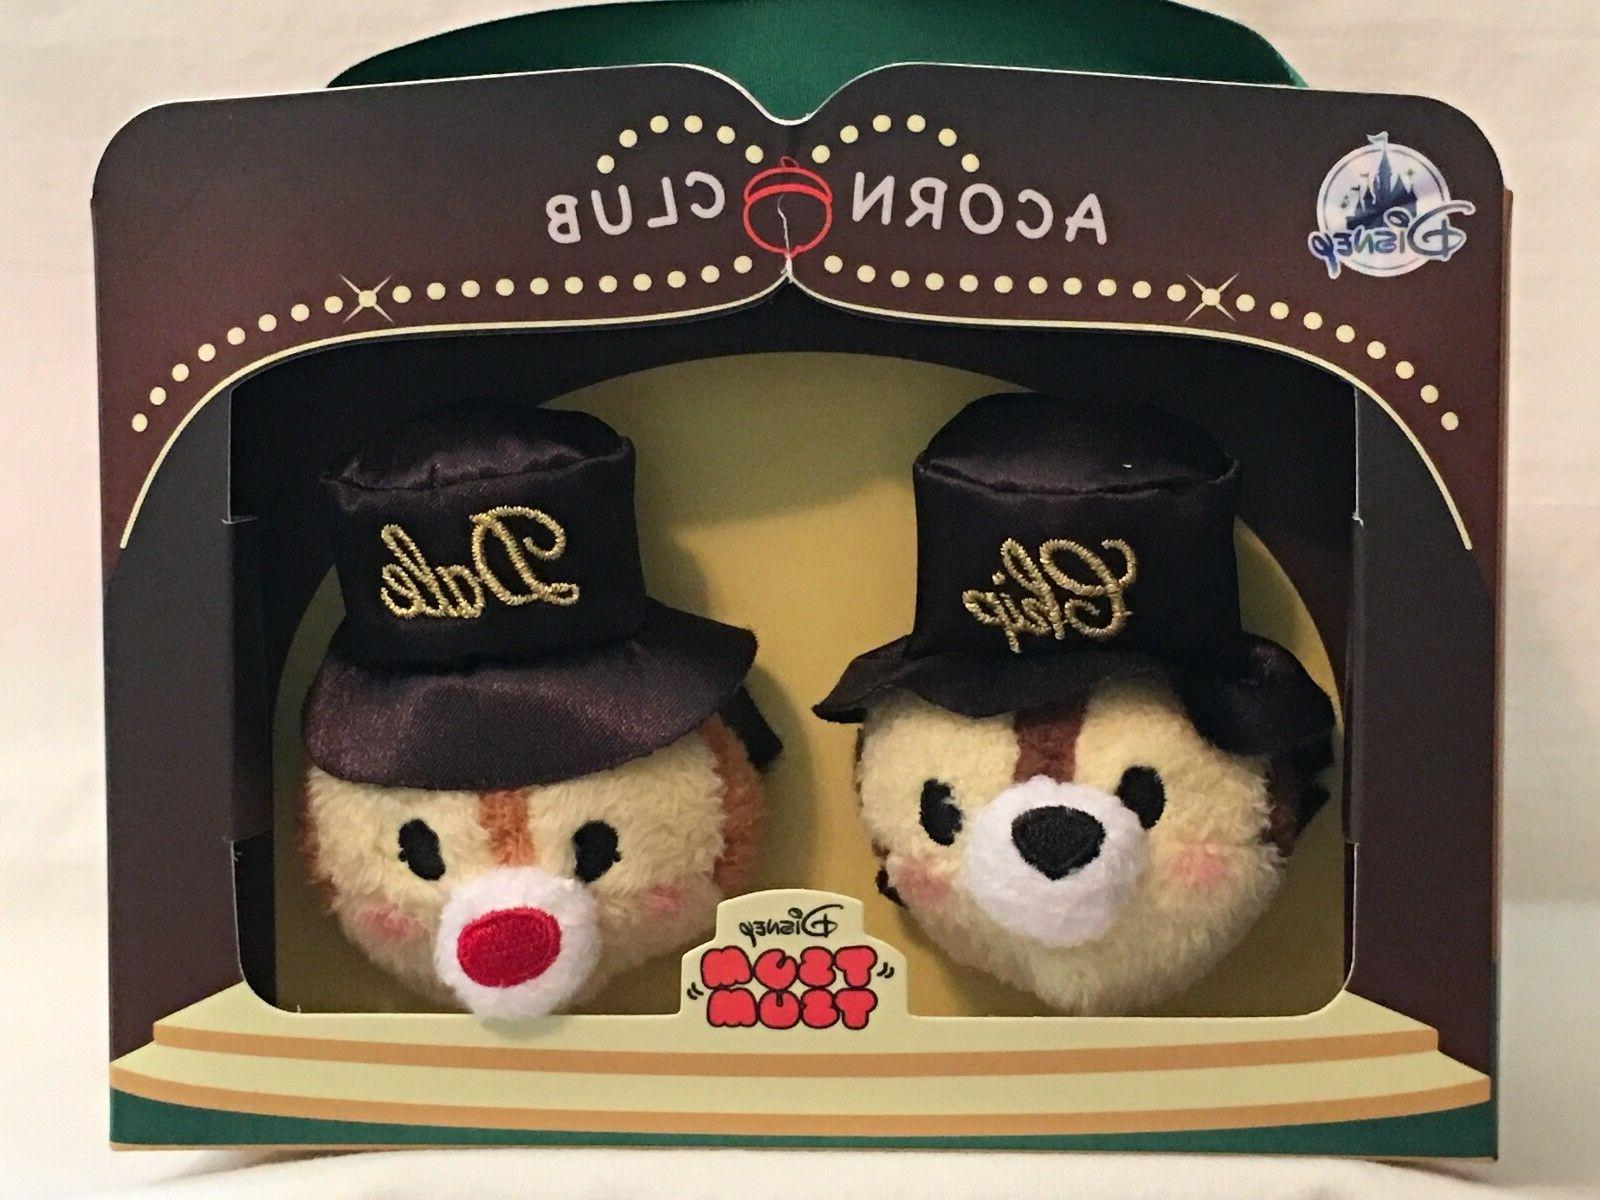 Disney Parks Chip 'n Dale 75th Anniversary Tsum Tsum Box Set